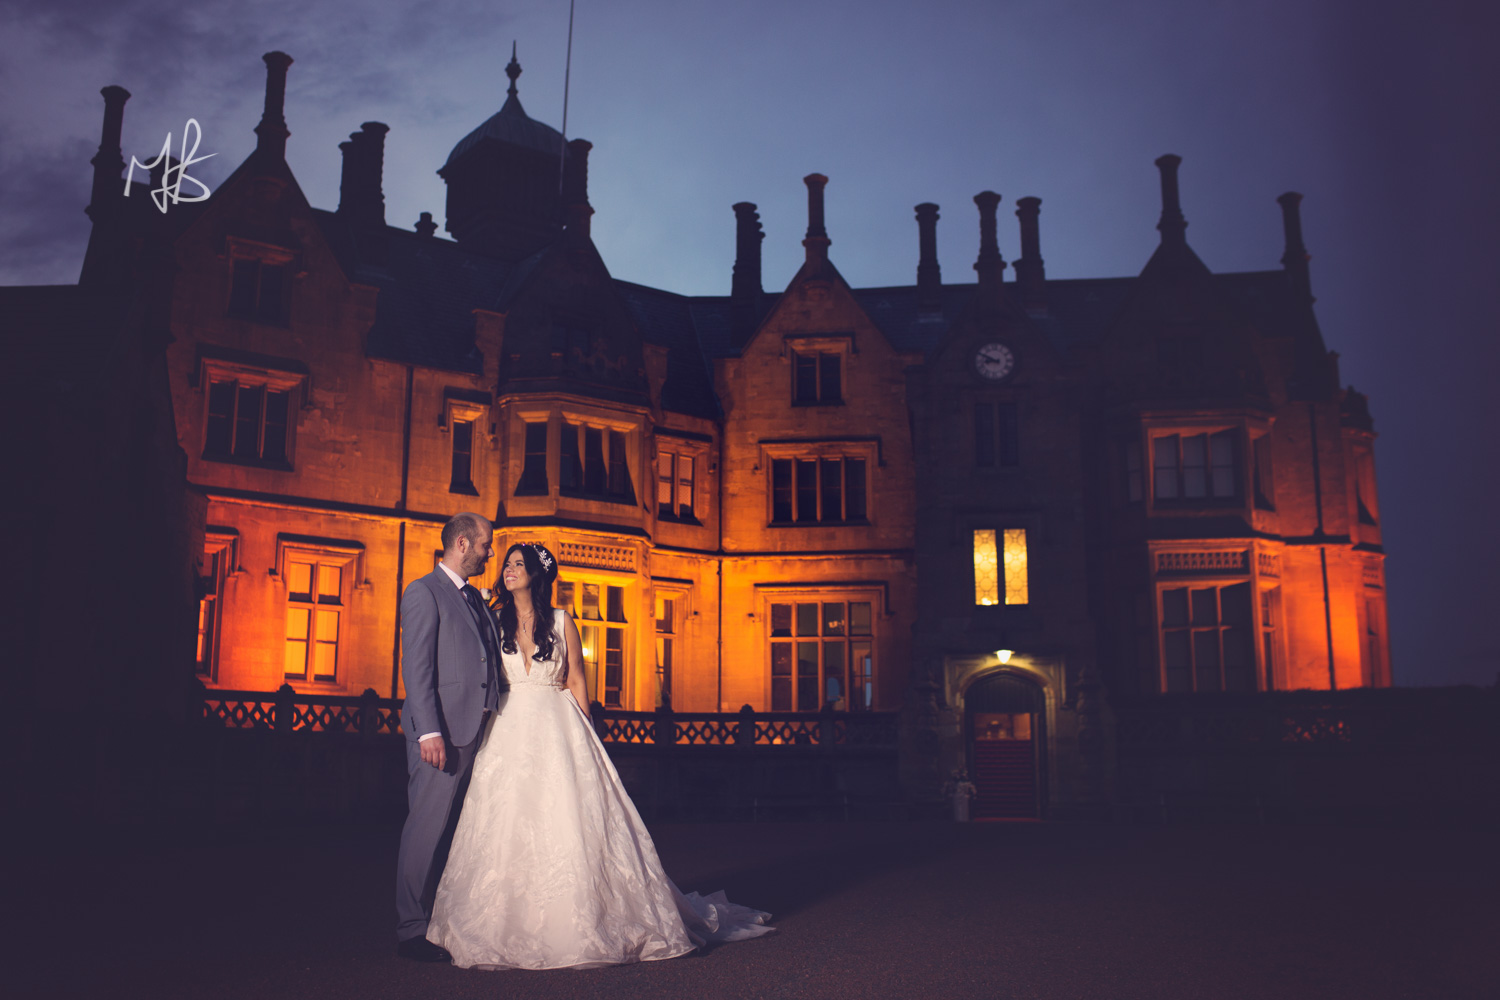 Mark_Barnes_Northern_Ireland_Wedding_Photography_Brownlow_House_Wedding_Photography-previews-361.jpg